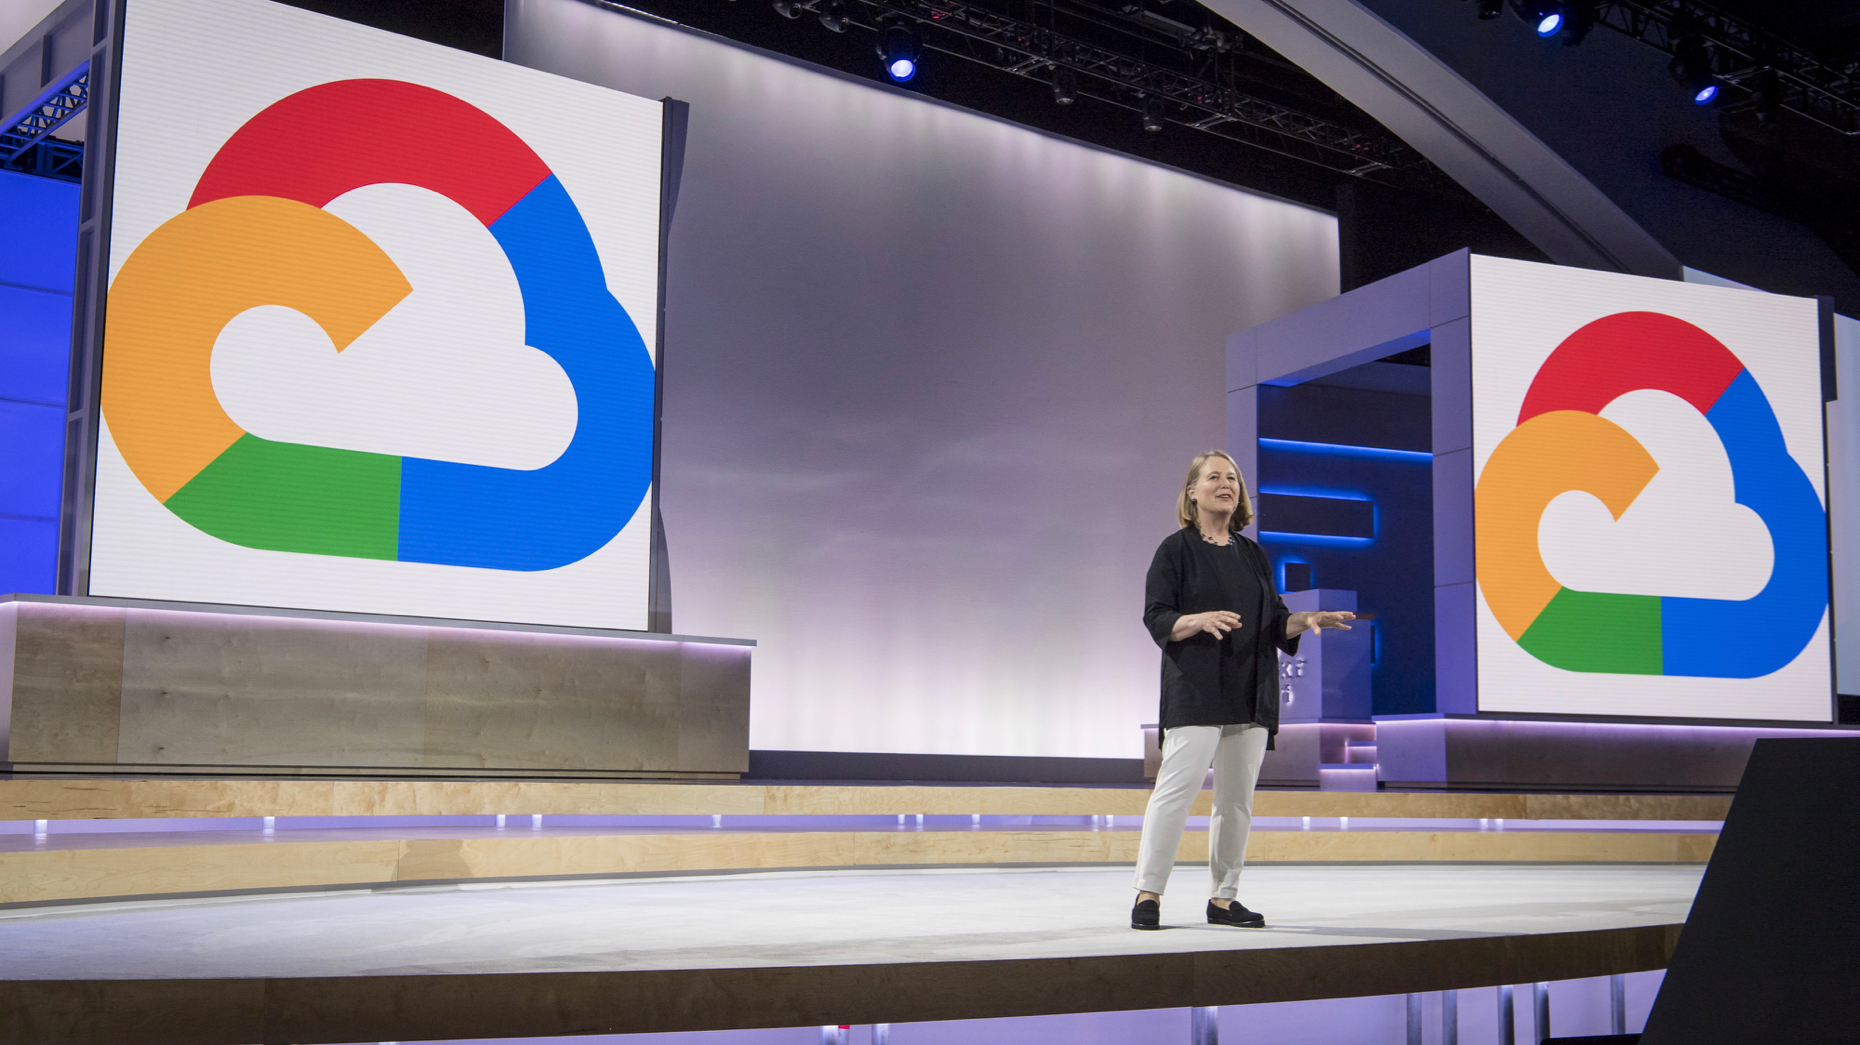 theinformation.com - Google Cloud Tests Devices For Private Data Centers